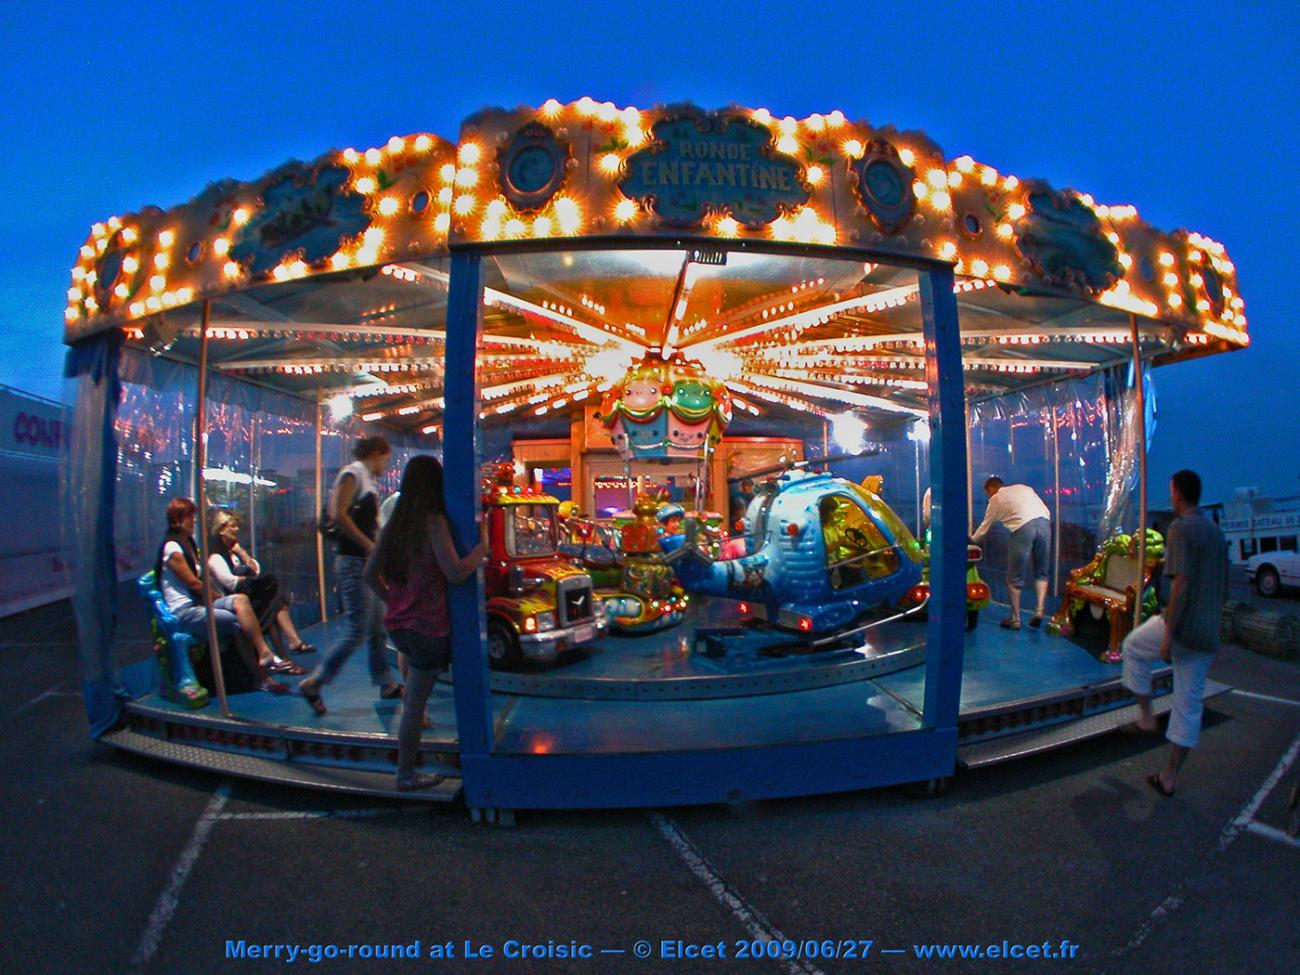 Fisheye image 2 - Merry-go-round 1, Le Croisic by Elcet